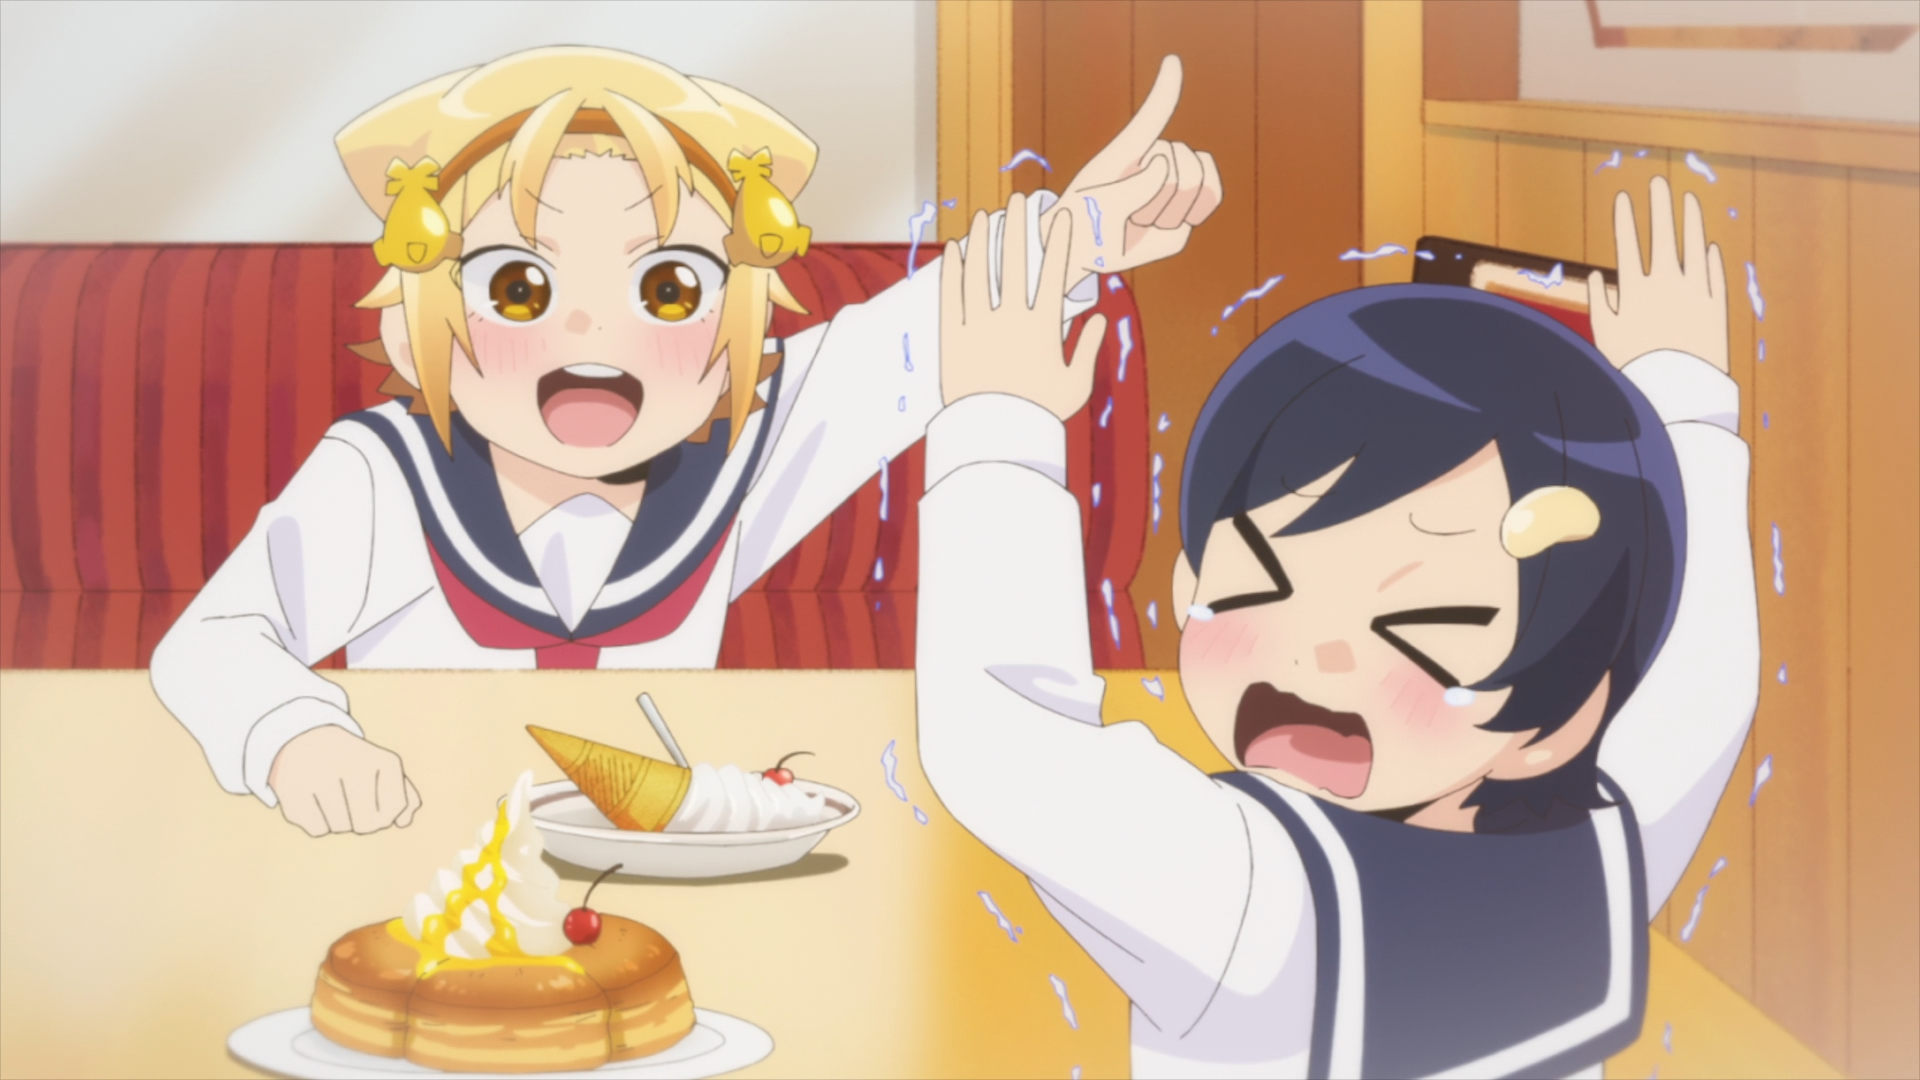 Monaka Yatogame treats Toshika Jin to some treats at a family restaurant while Toshika is intimidated by Monaka's out-going personality in a scene from the Yatogame-chan Kansatsu Nikki TV anime.